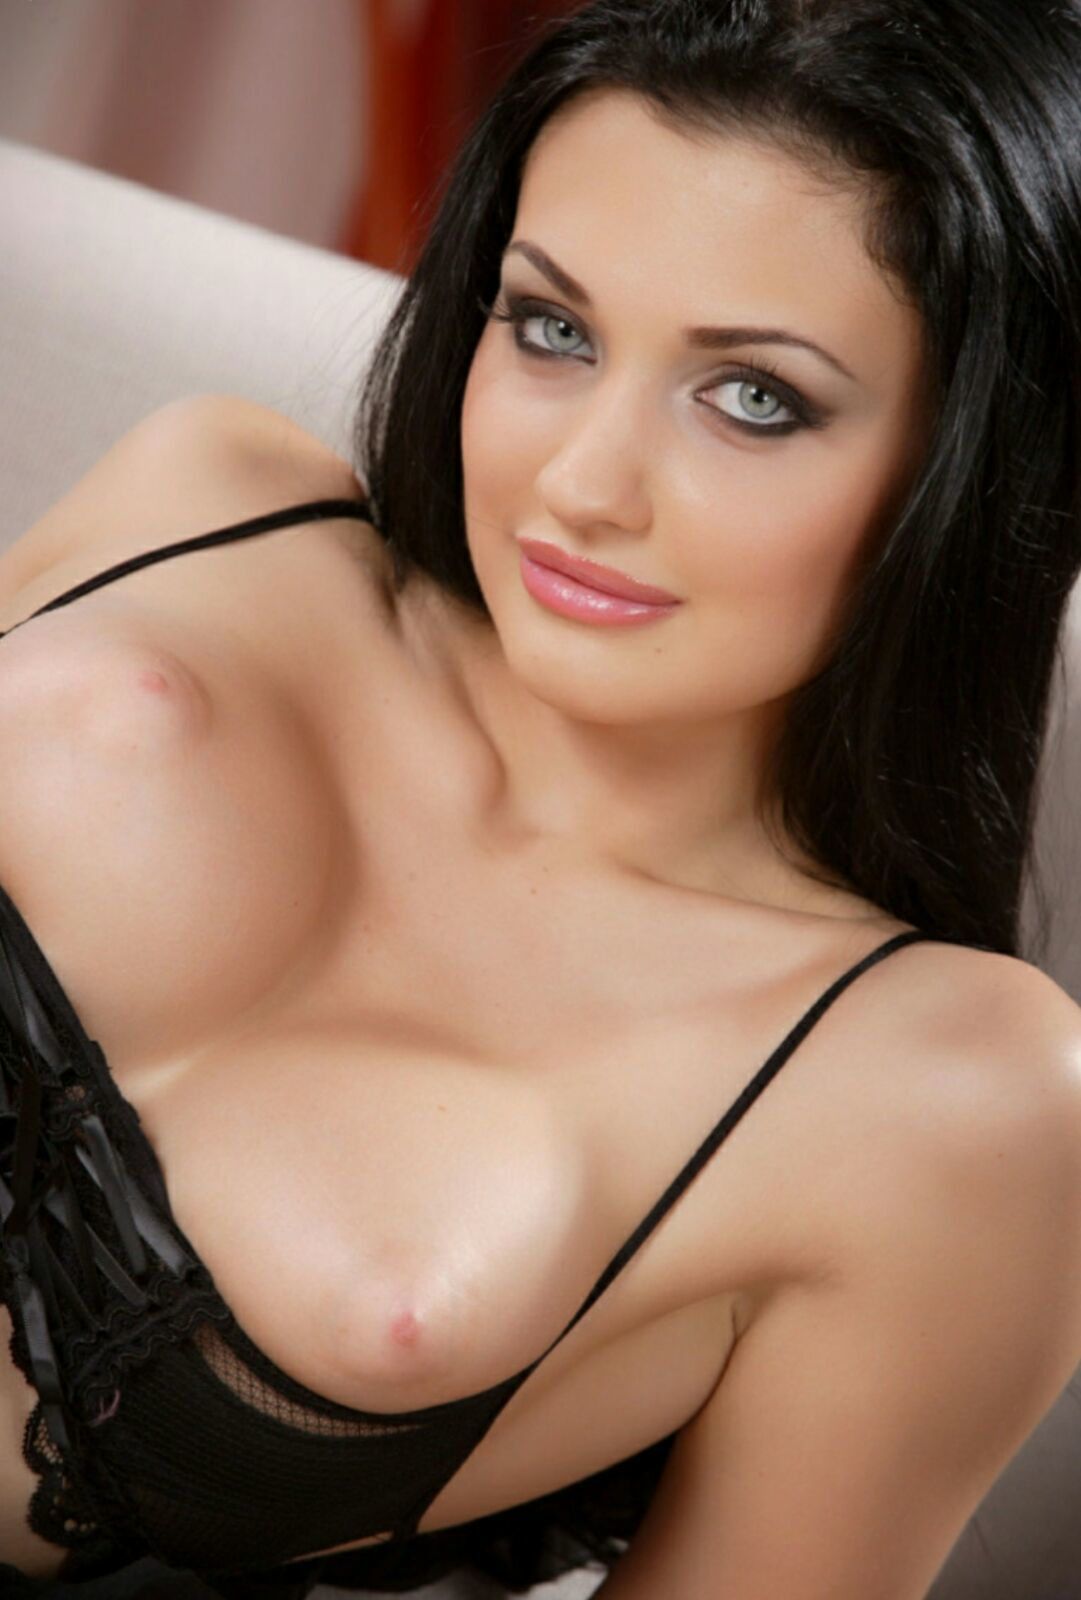 nuru massage moscow escort me